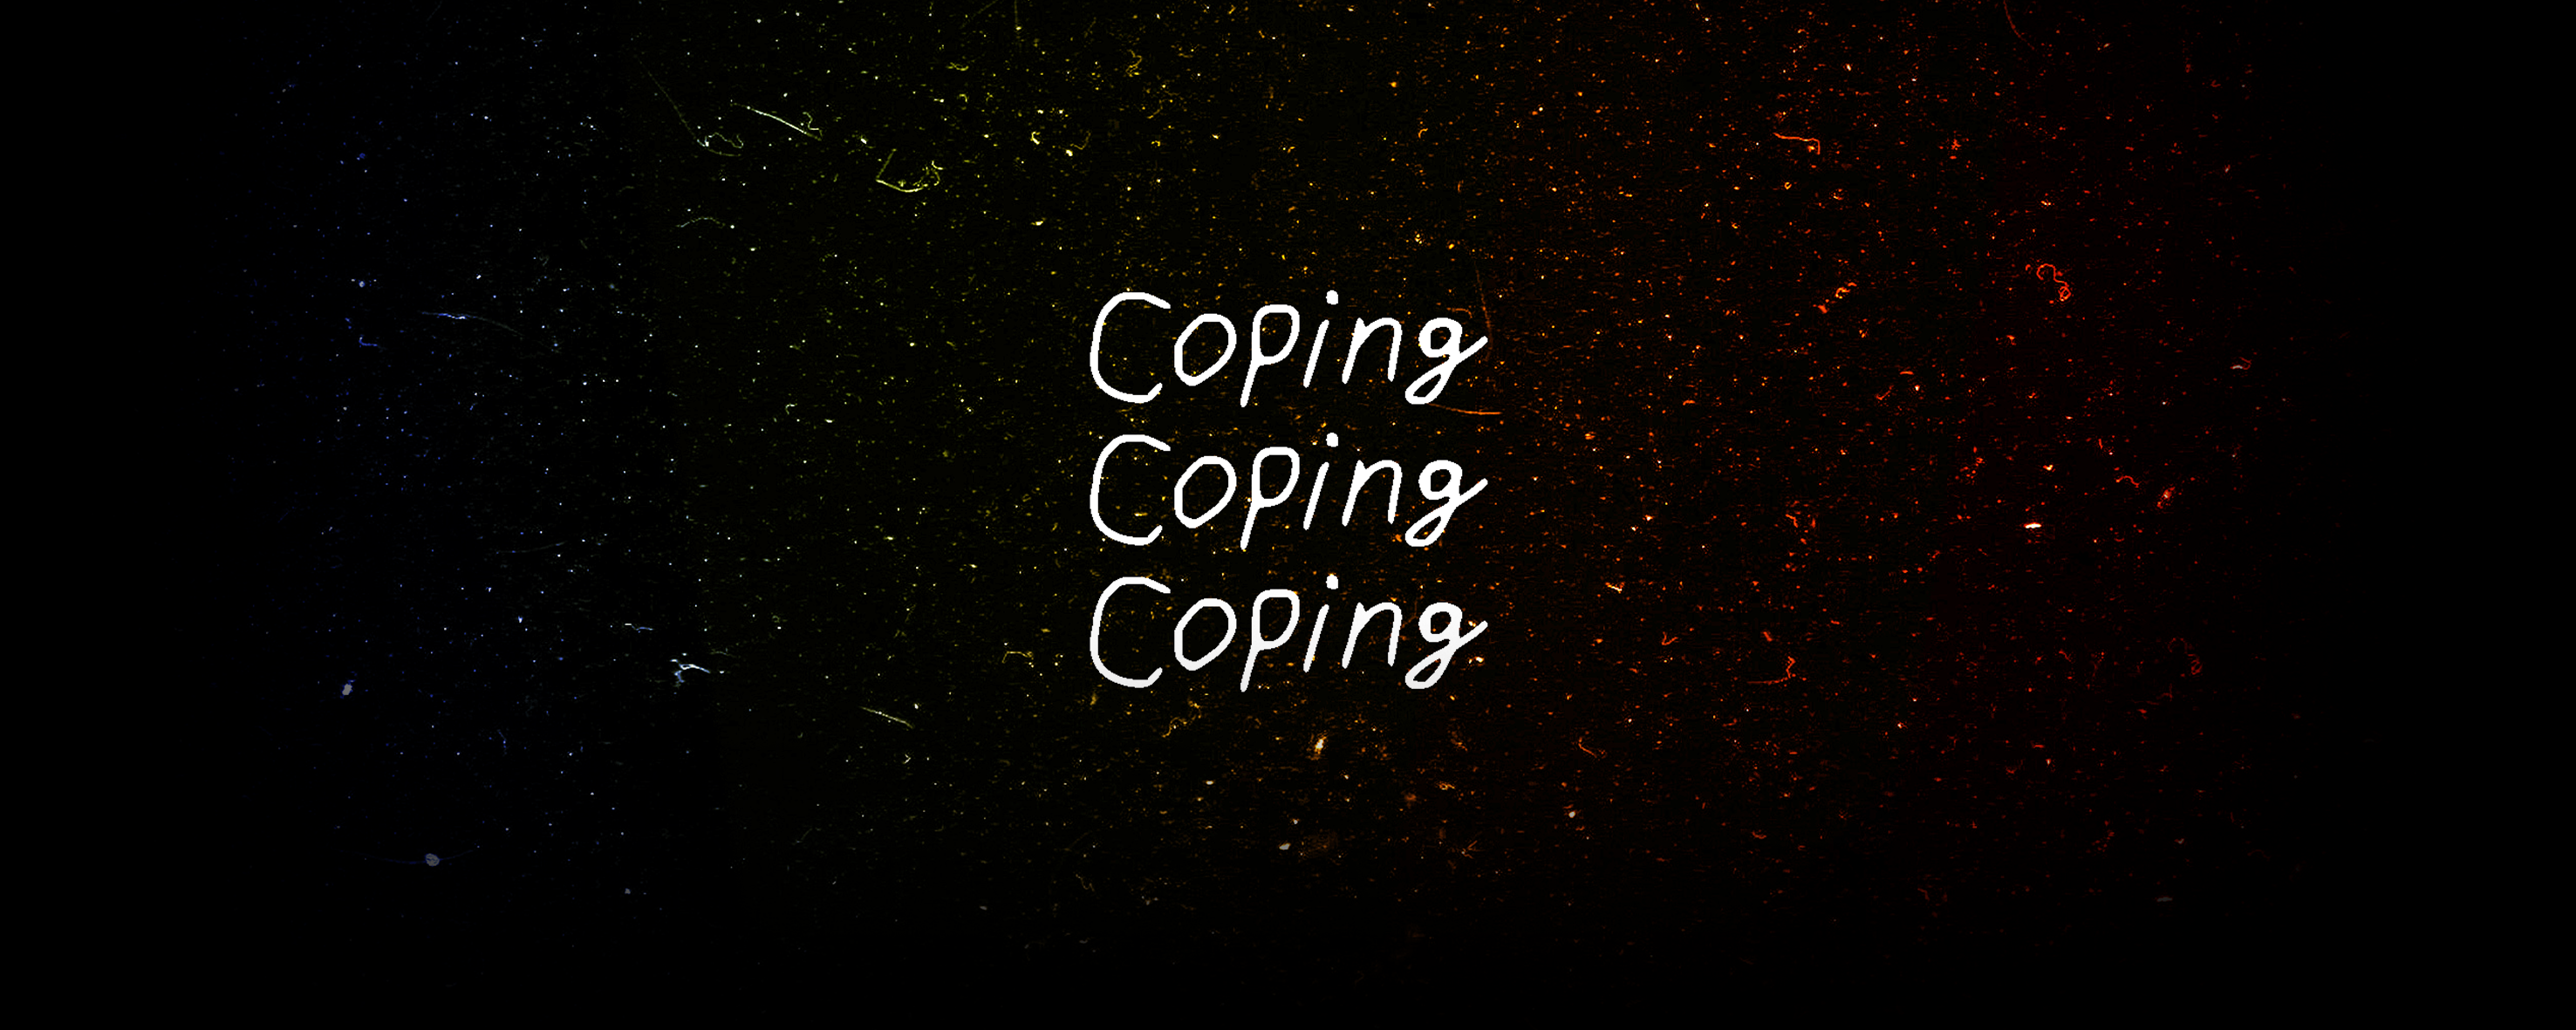 Coping Coping Coping